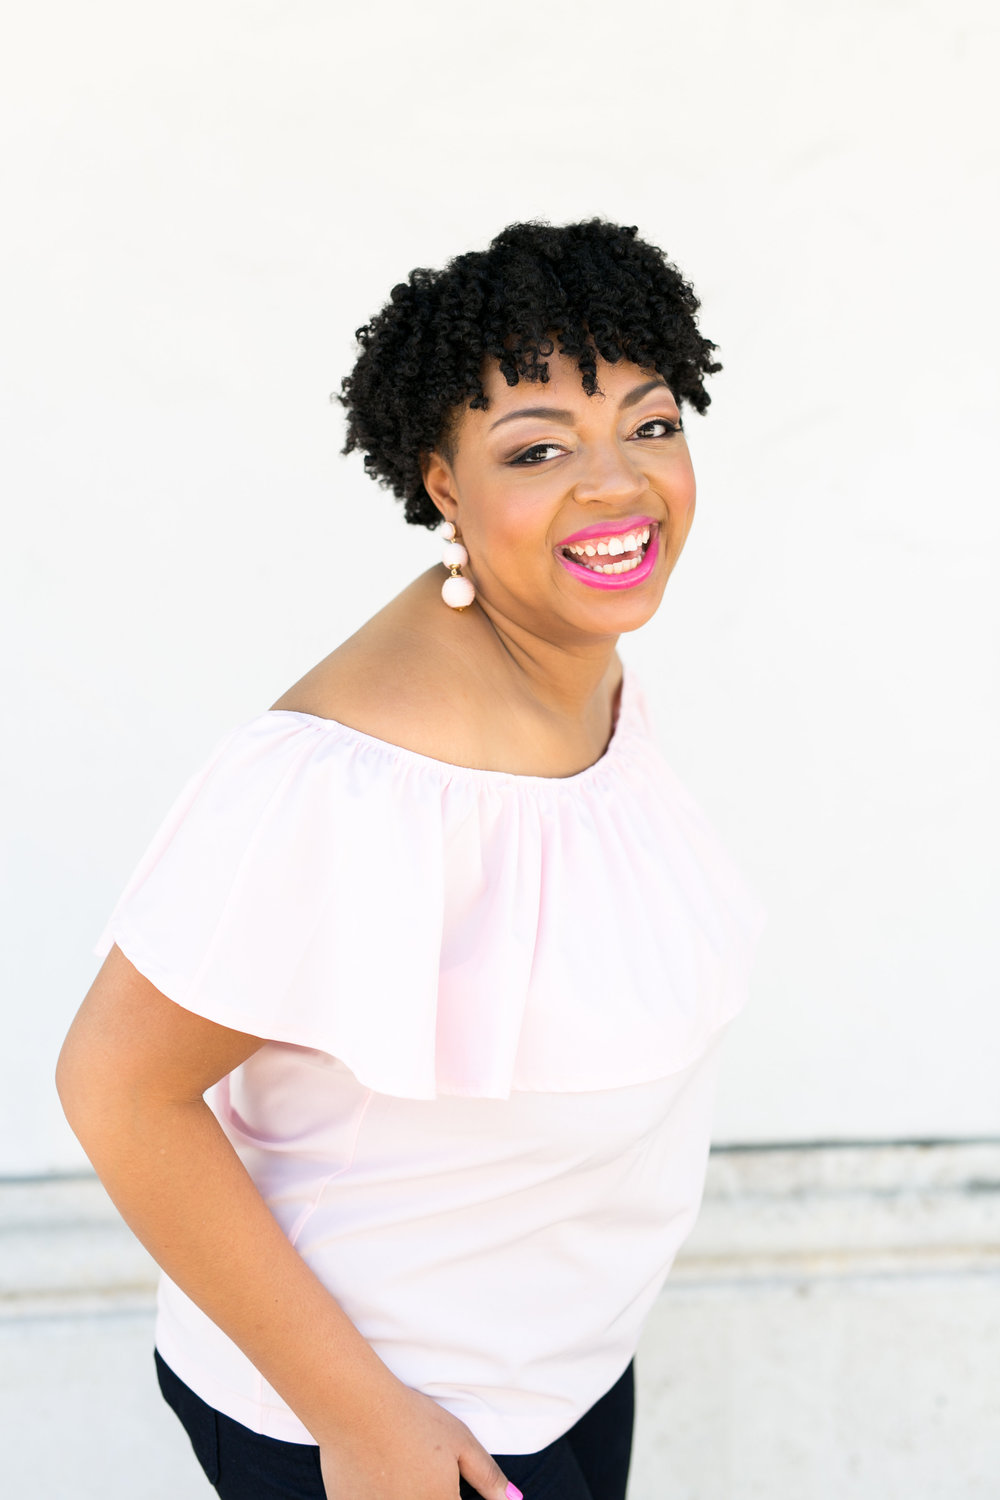 Krystal Clark - I am a VA for wedding professionals, and I'm a marketing mentor for VAs but guess what? I needed help to get out of my own head and out of my own way! I definitely recommend Chelle Weech's coaching program and I'm going to just say one thing that will sum it all up. This chick knows what she is doing and what she is talking about. She will push you beyond your fear and challenge you to break free and make progress so you can make bank! She's real and supportive with a heart to serve and resources that work.You'll get access to resources and insight that will help you bypass the learning curve and the competition. Do this and thank yourself later!